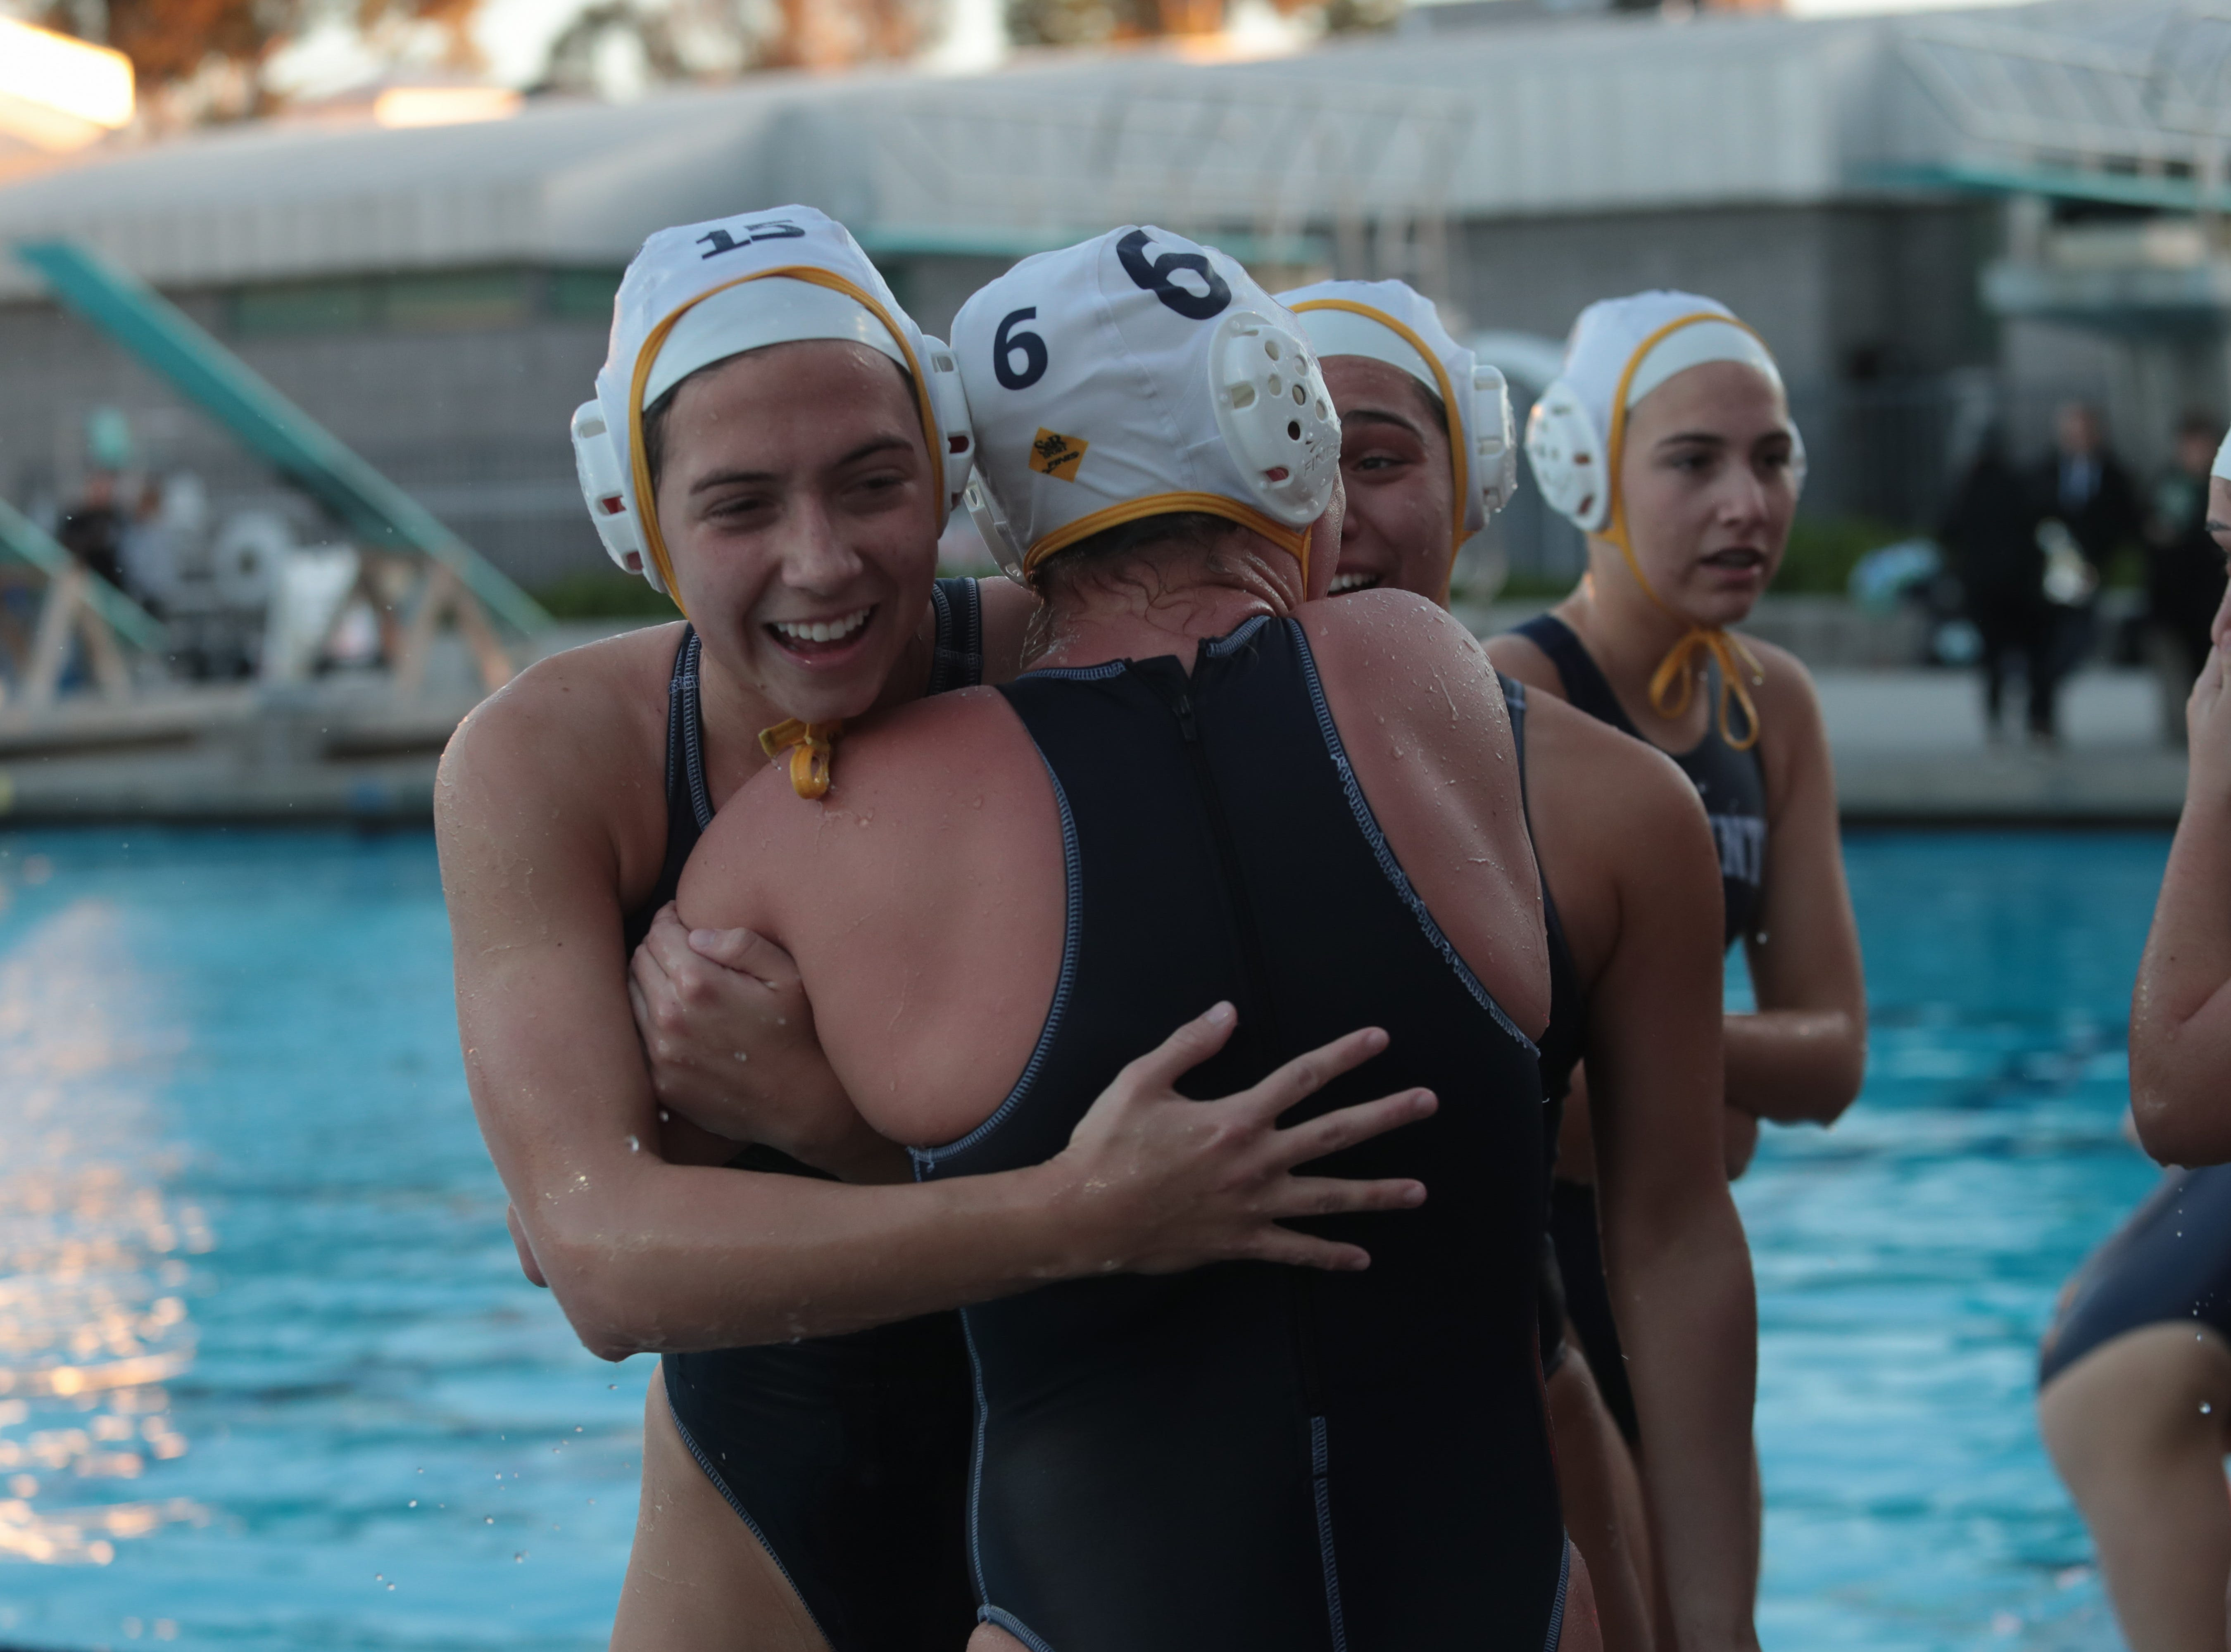 Virginia Lowell hugs teammate Savannah Hampton after winning the CIF Southern Section Division 4 championships, Irvine, Calif., Saturday, February 16, 2019.